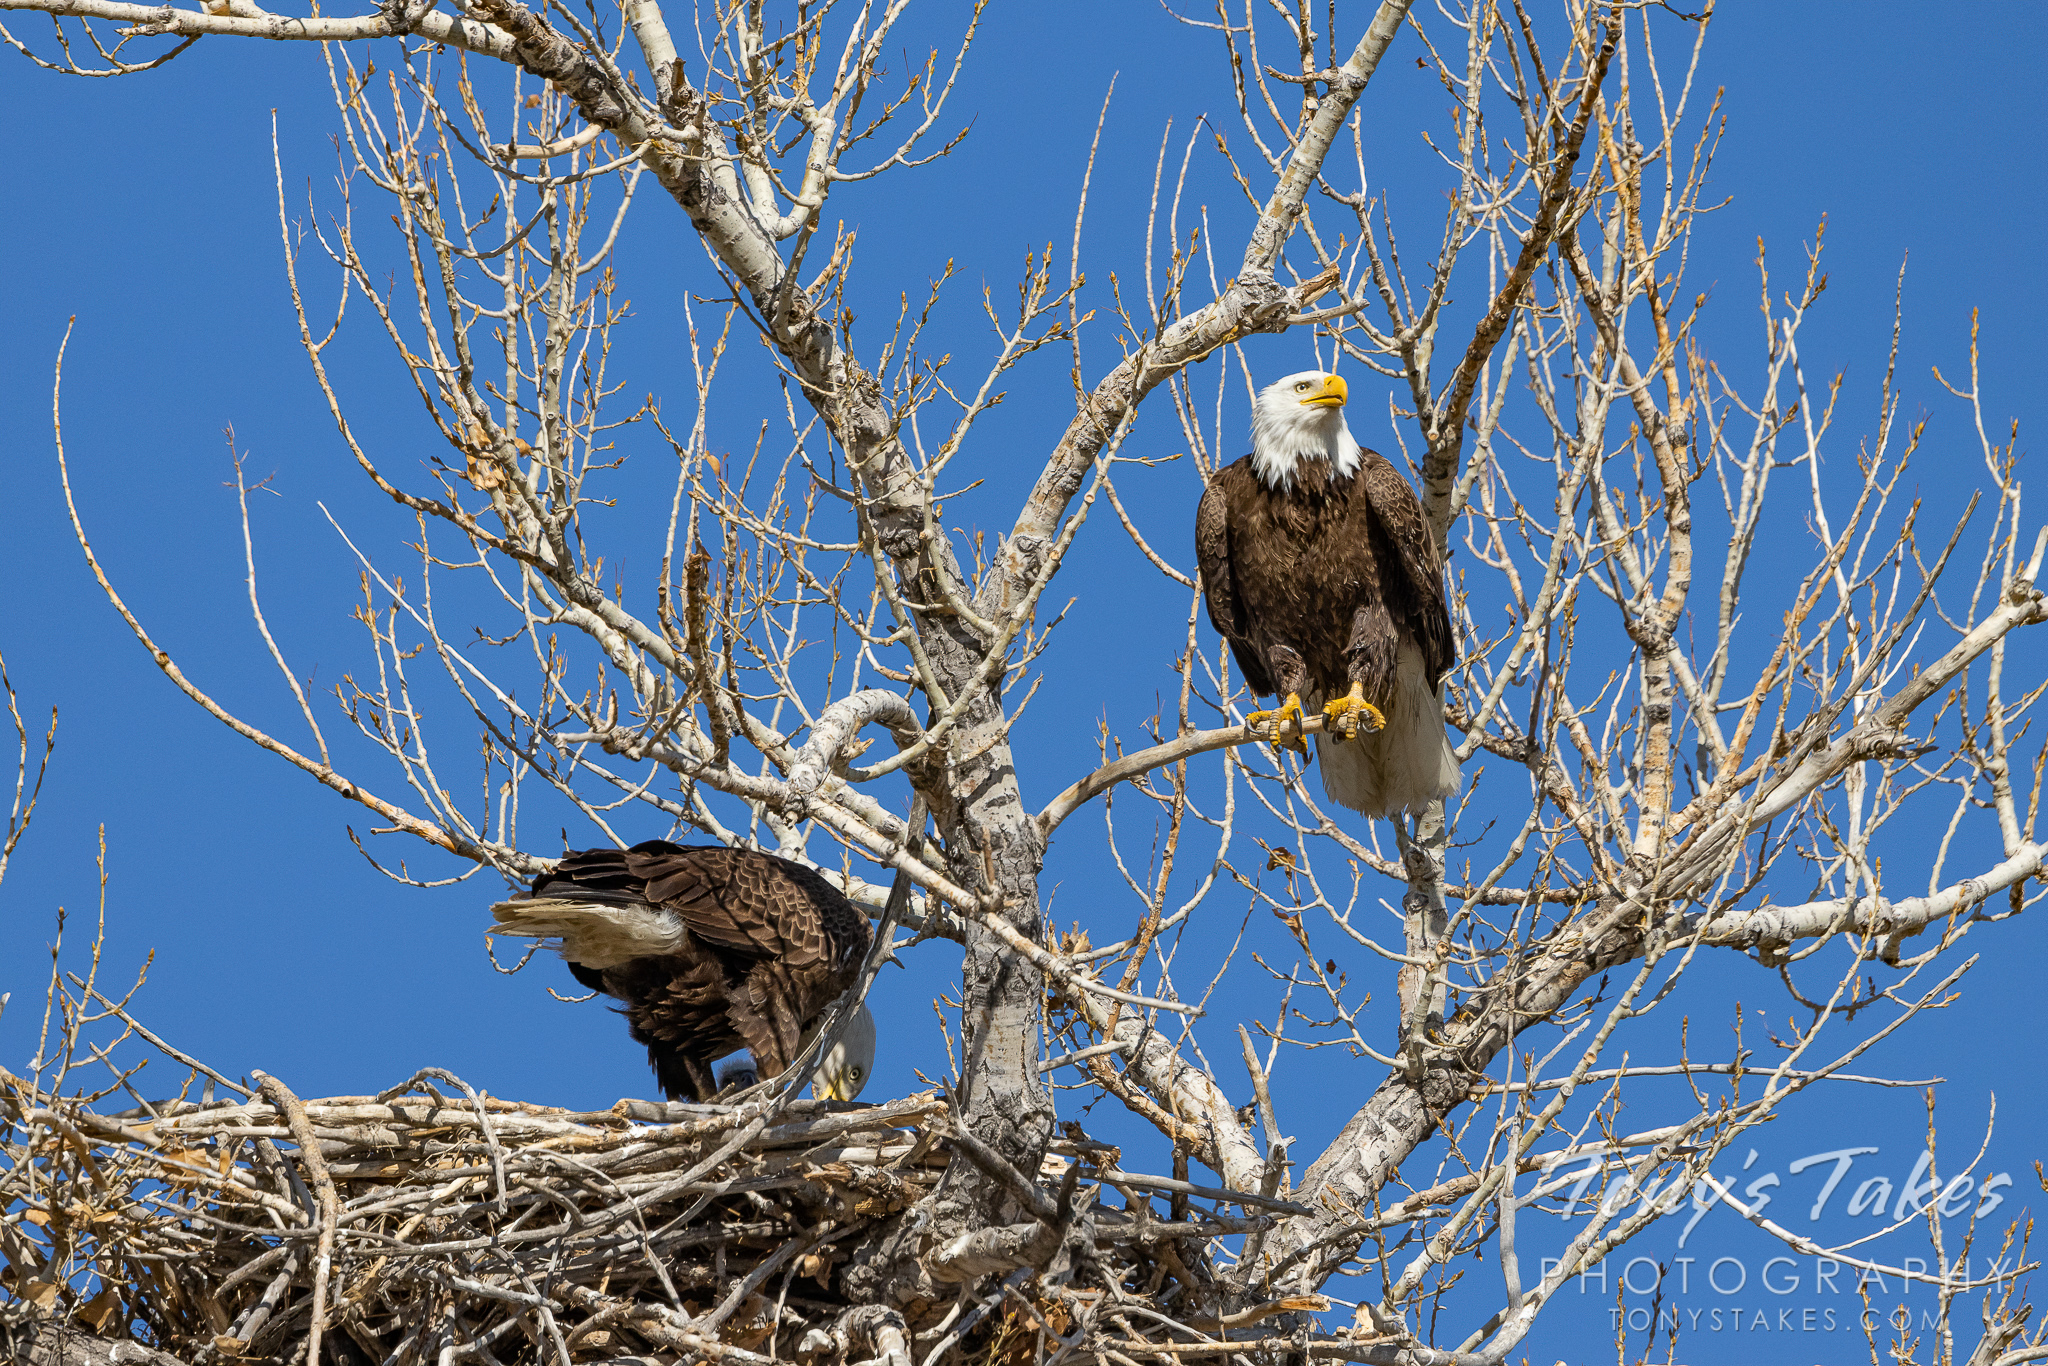 Bald eagle family portrait